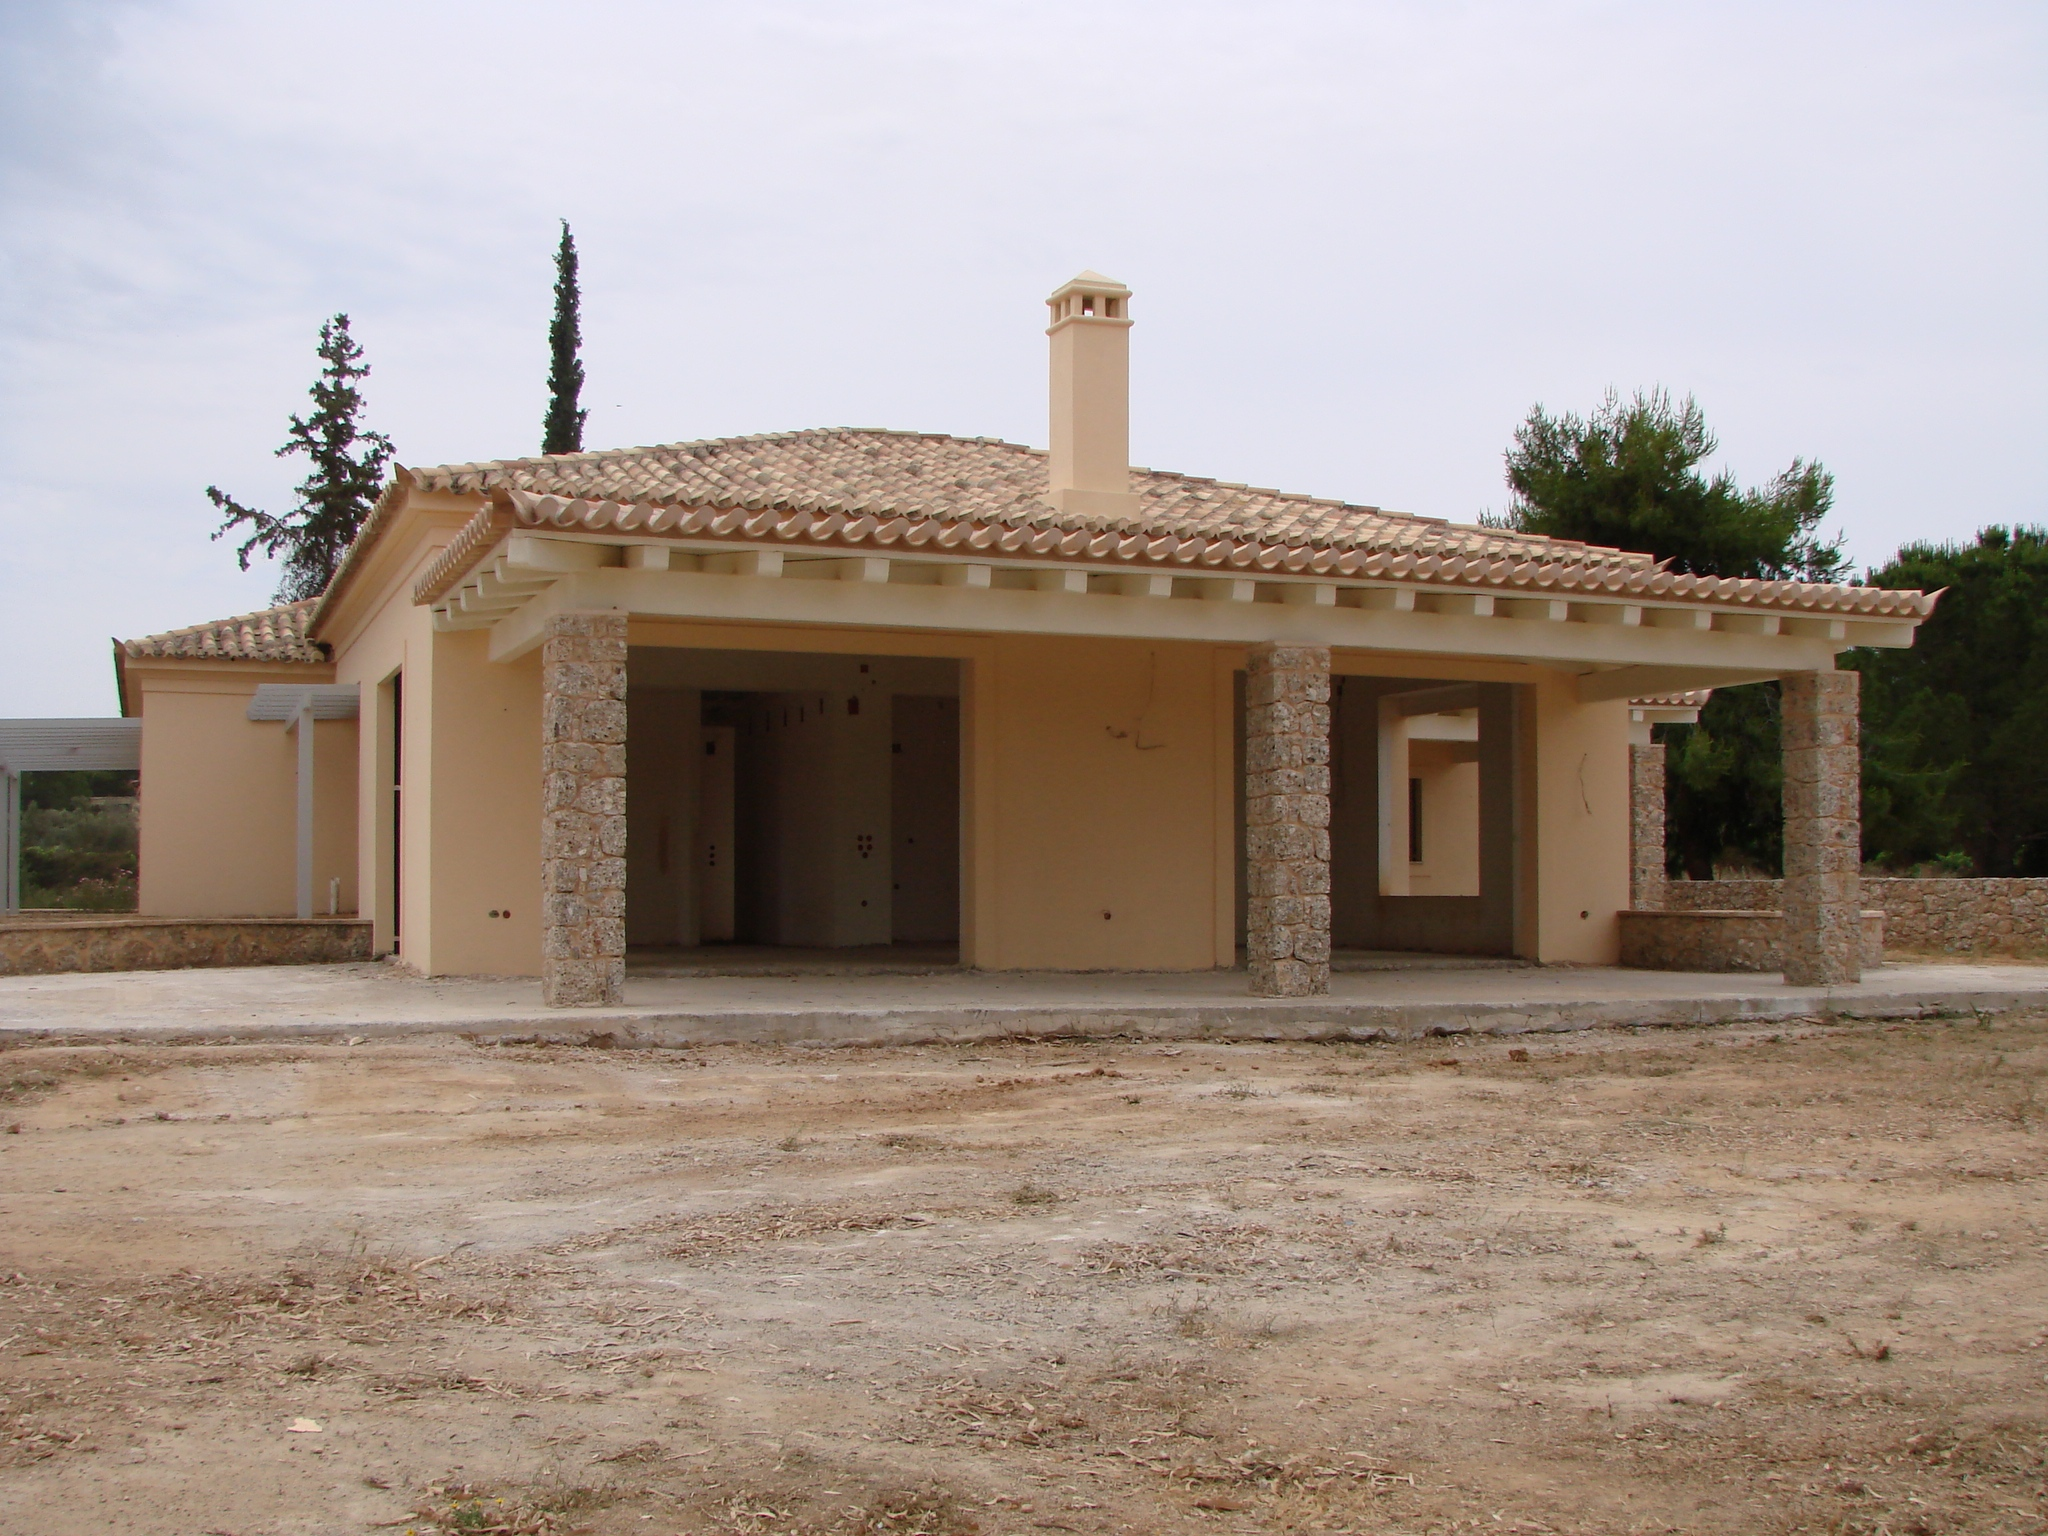 Prestigious villa 200 sq.m. on a sublime plot of land 4500 sq.m. with outstanding view to the harbor of Porto Heli